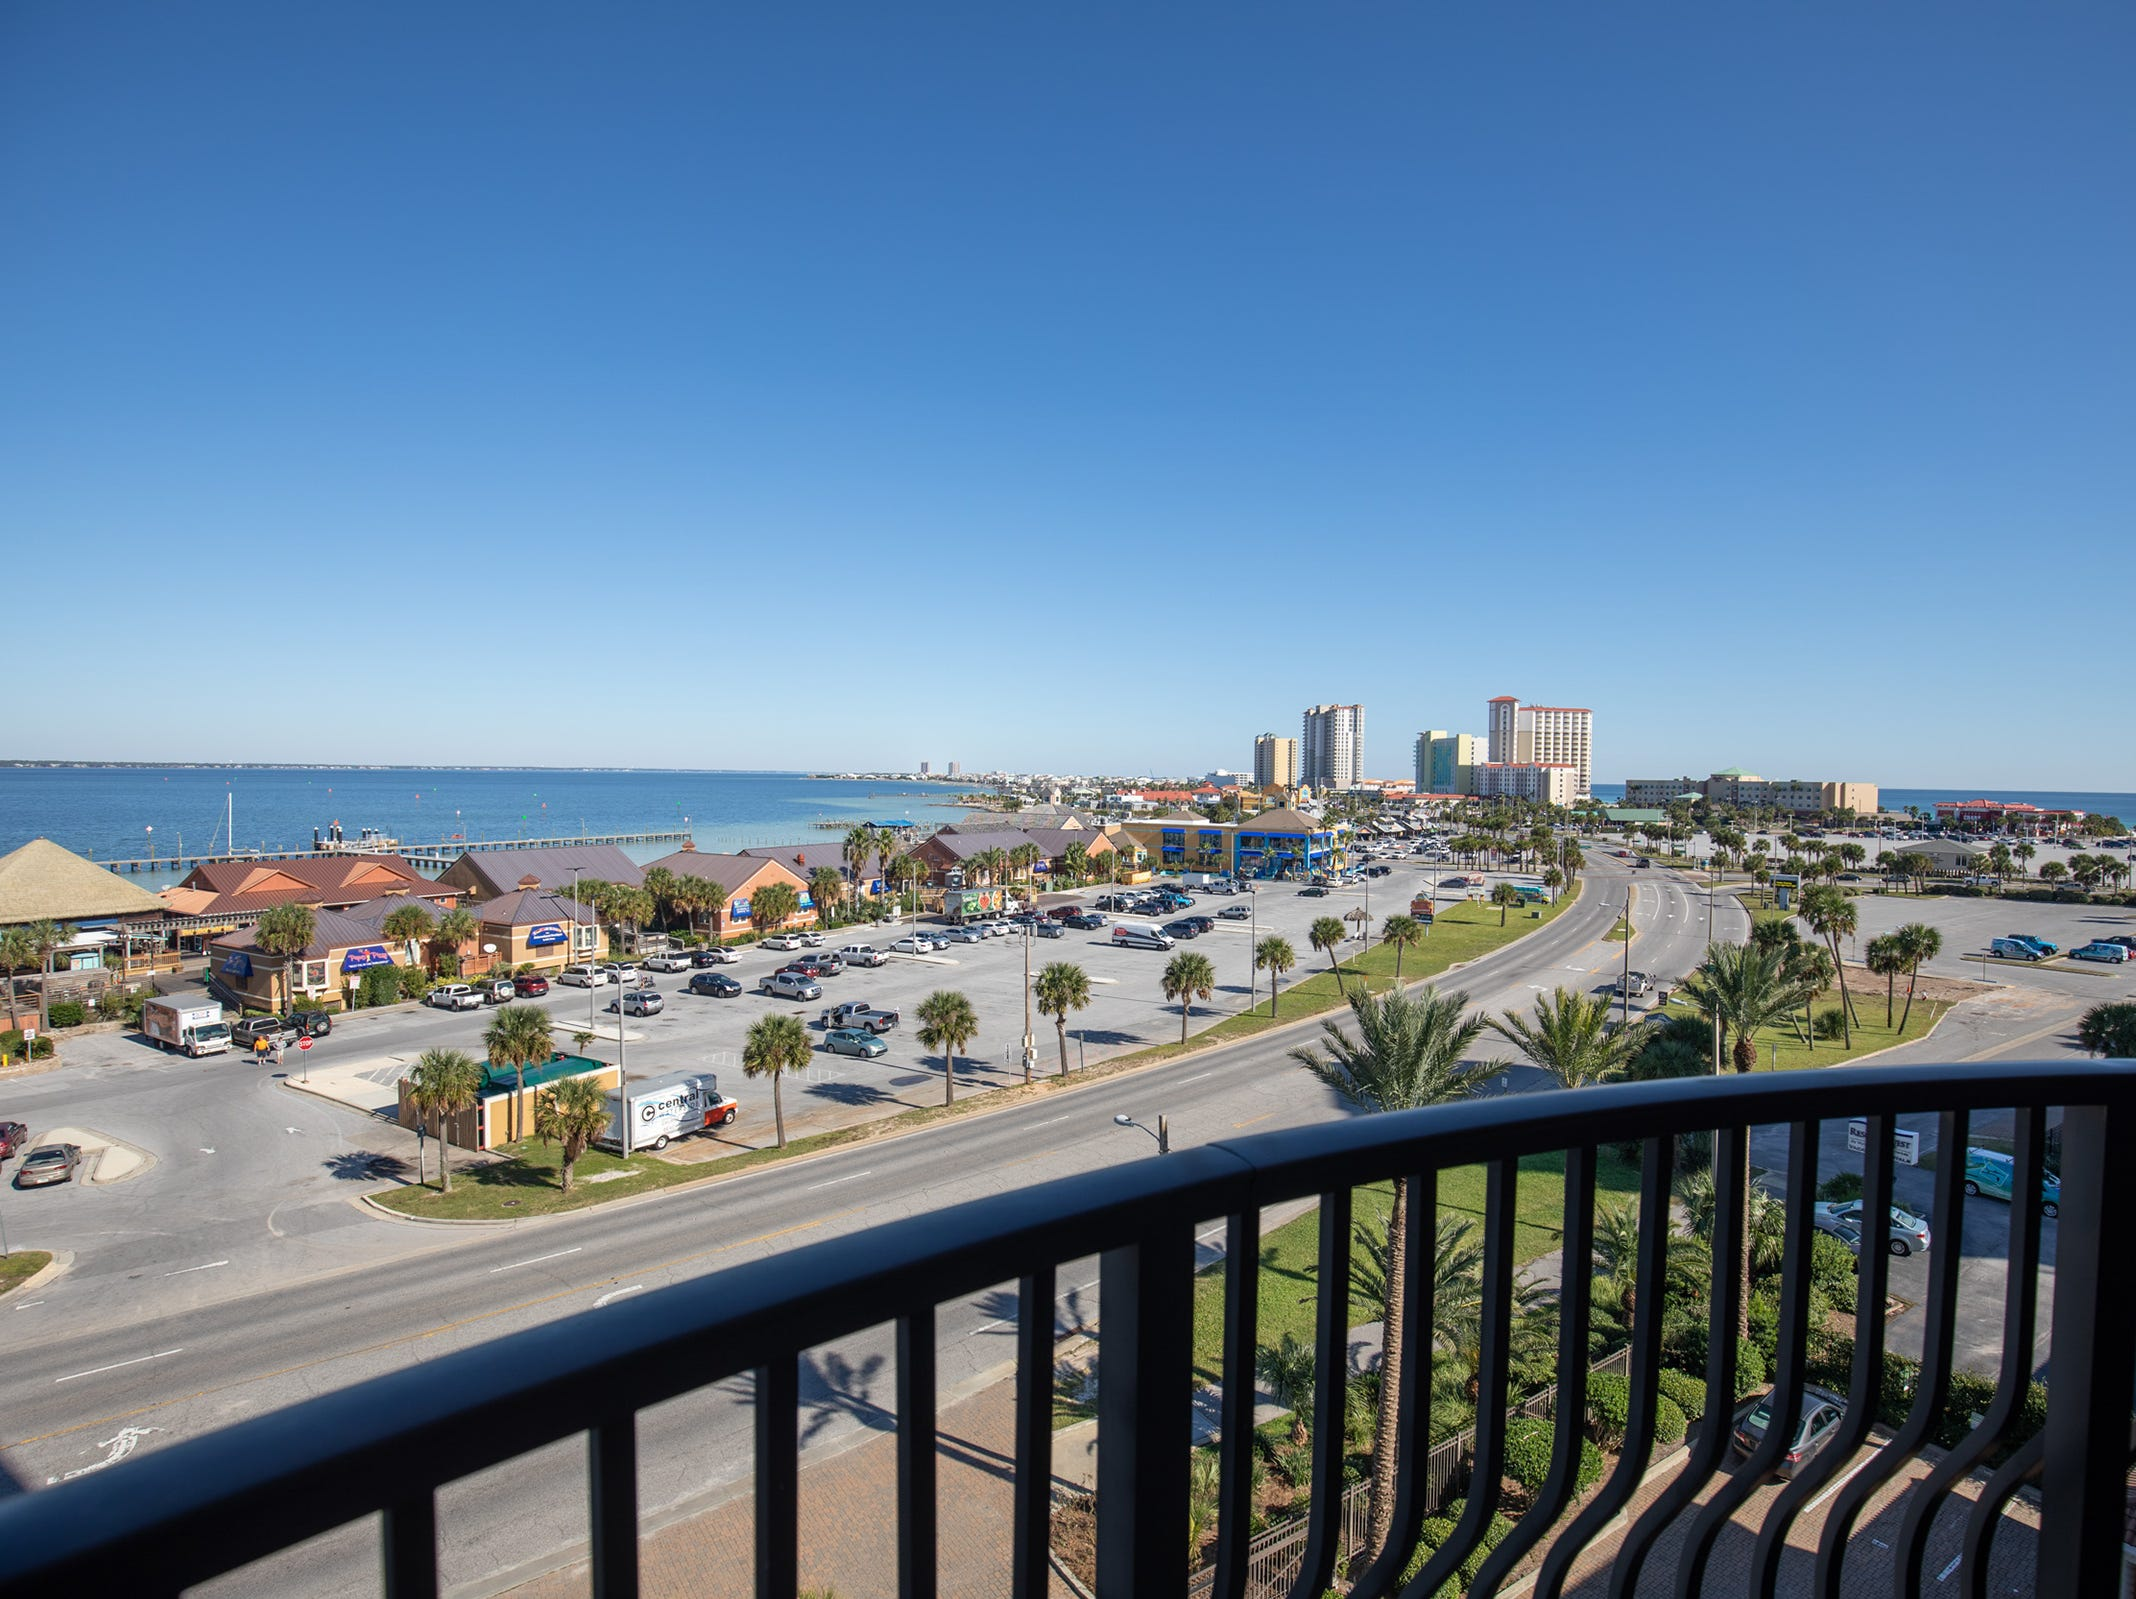 721 Pensacola Beach Boulevard - Verandas #601